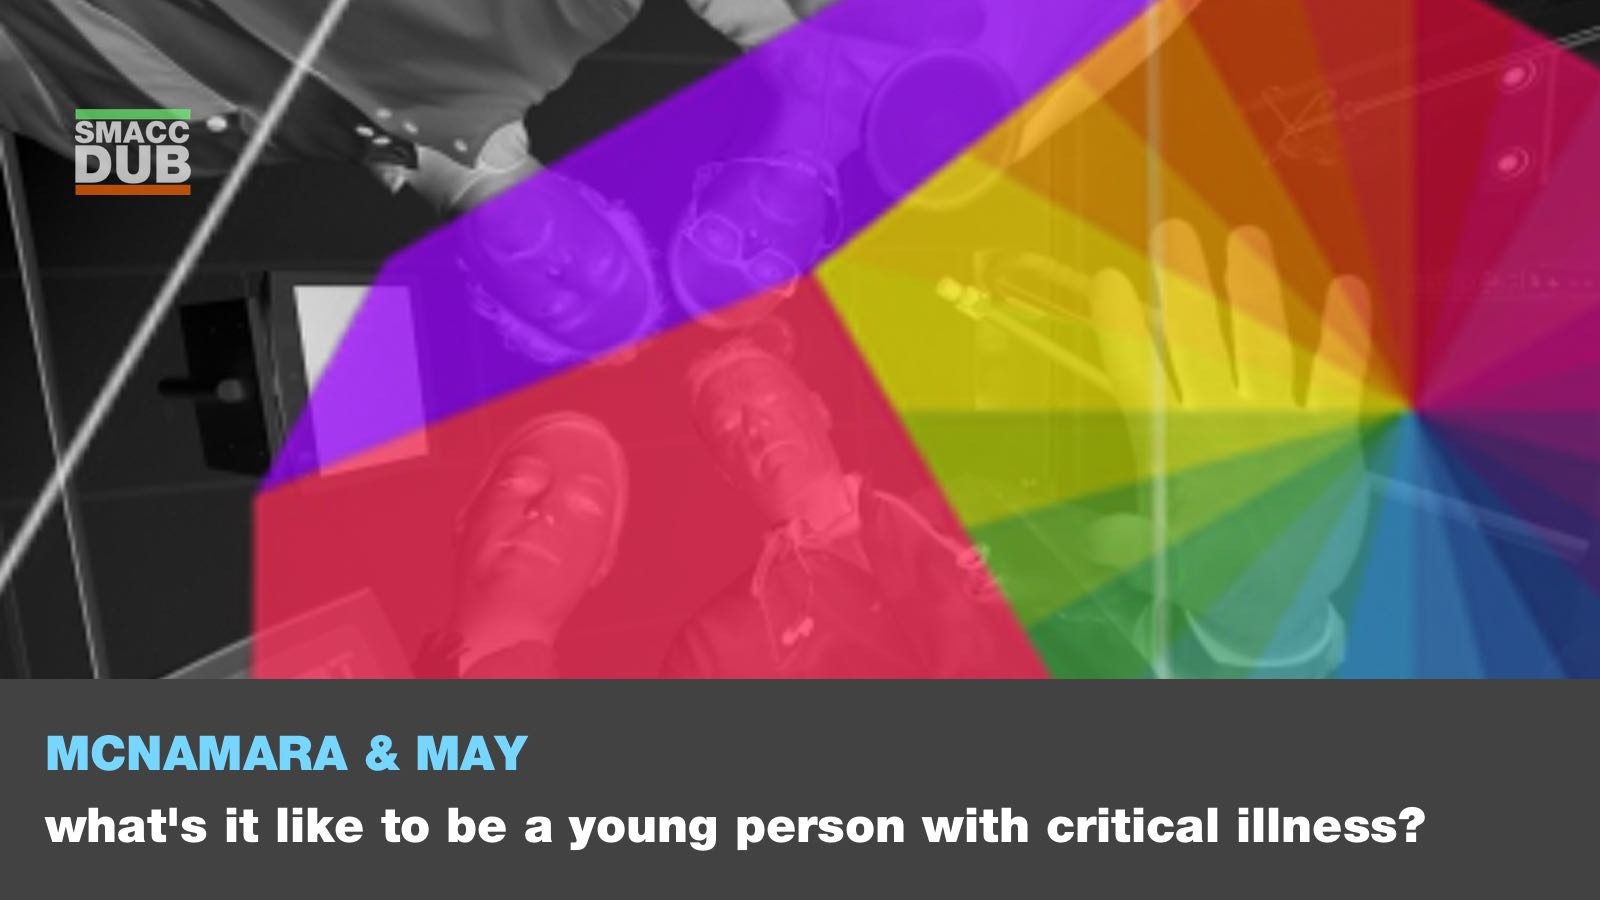 smaccmini - May Macnamara - What's it like to be a young person with critical illness